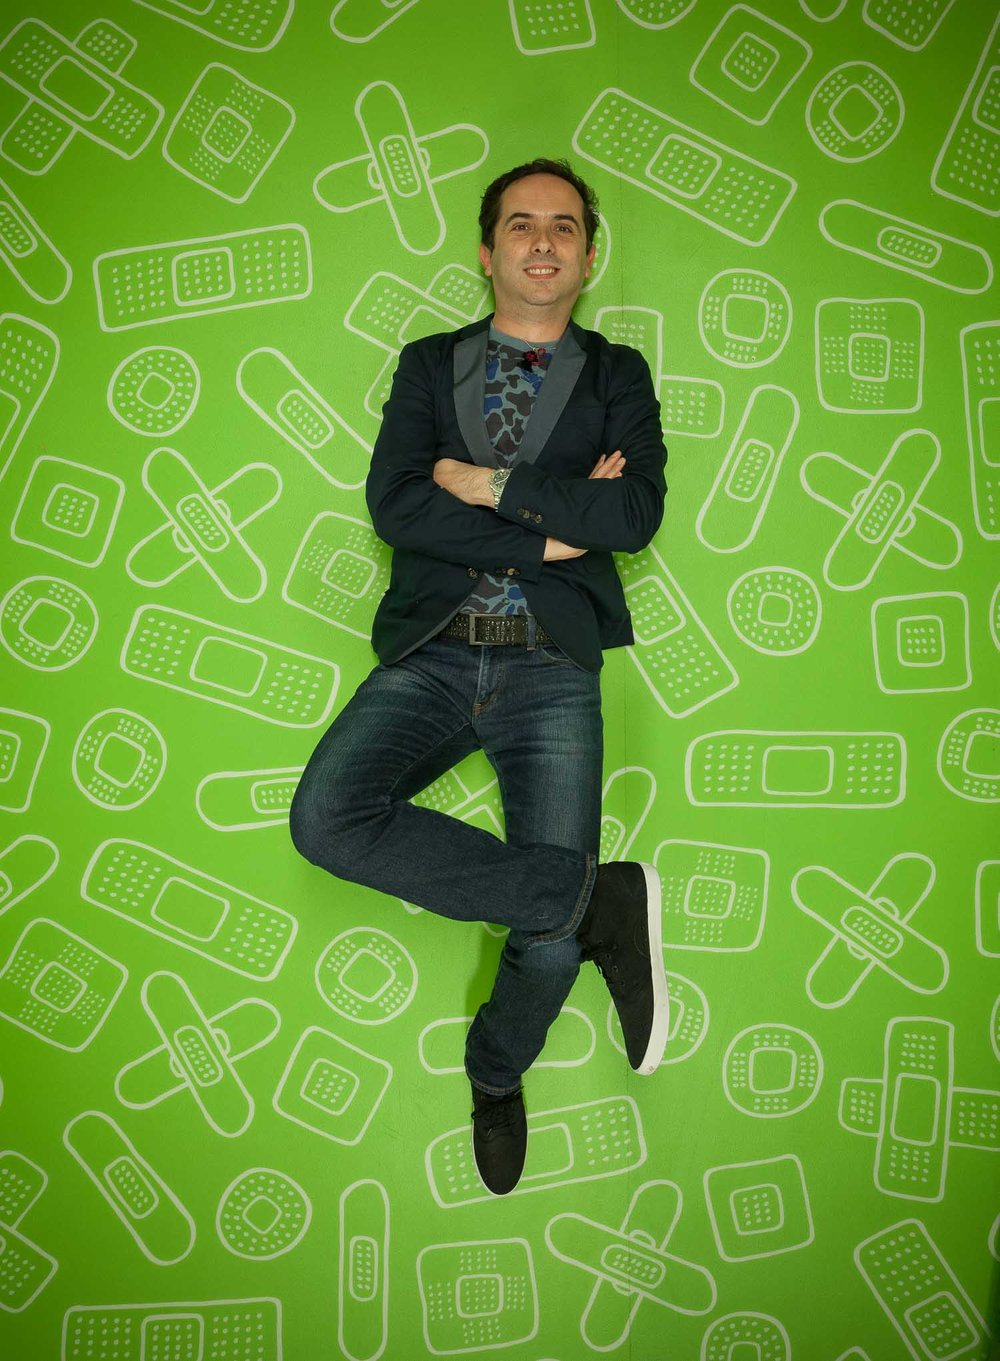 Sergio Mannino photographed on the Careland custom floor